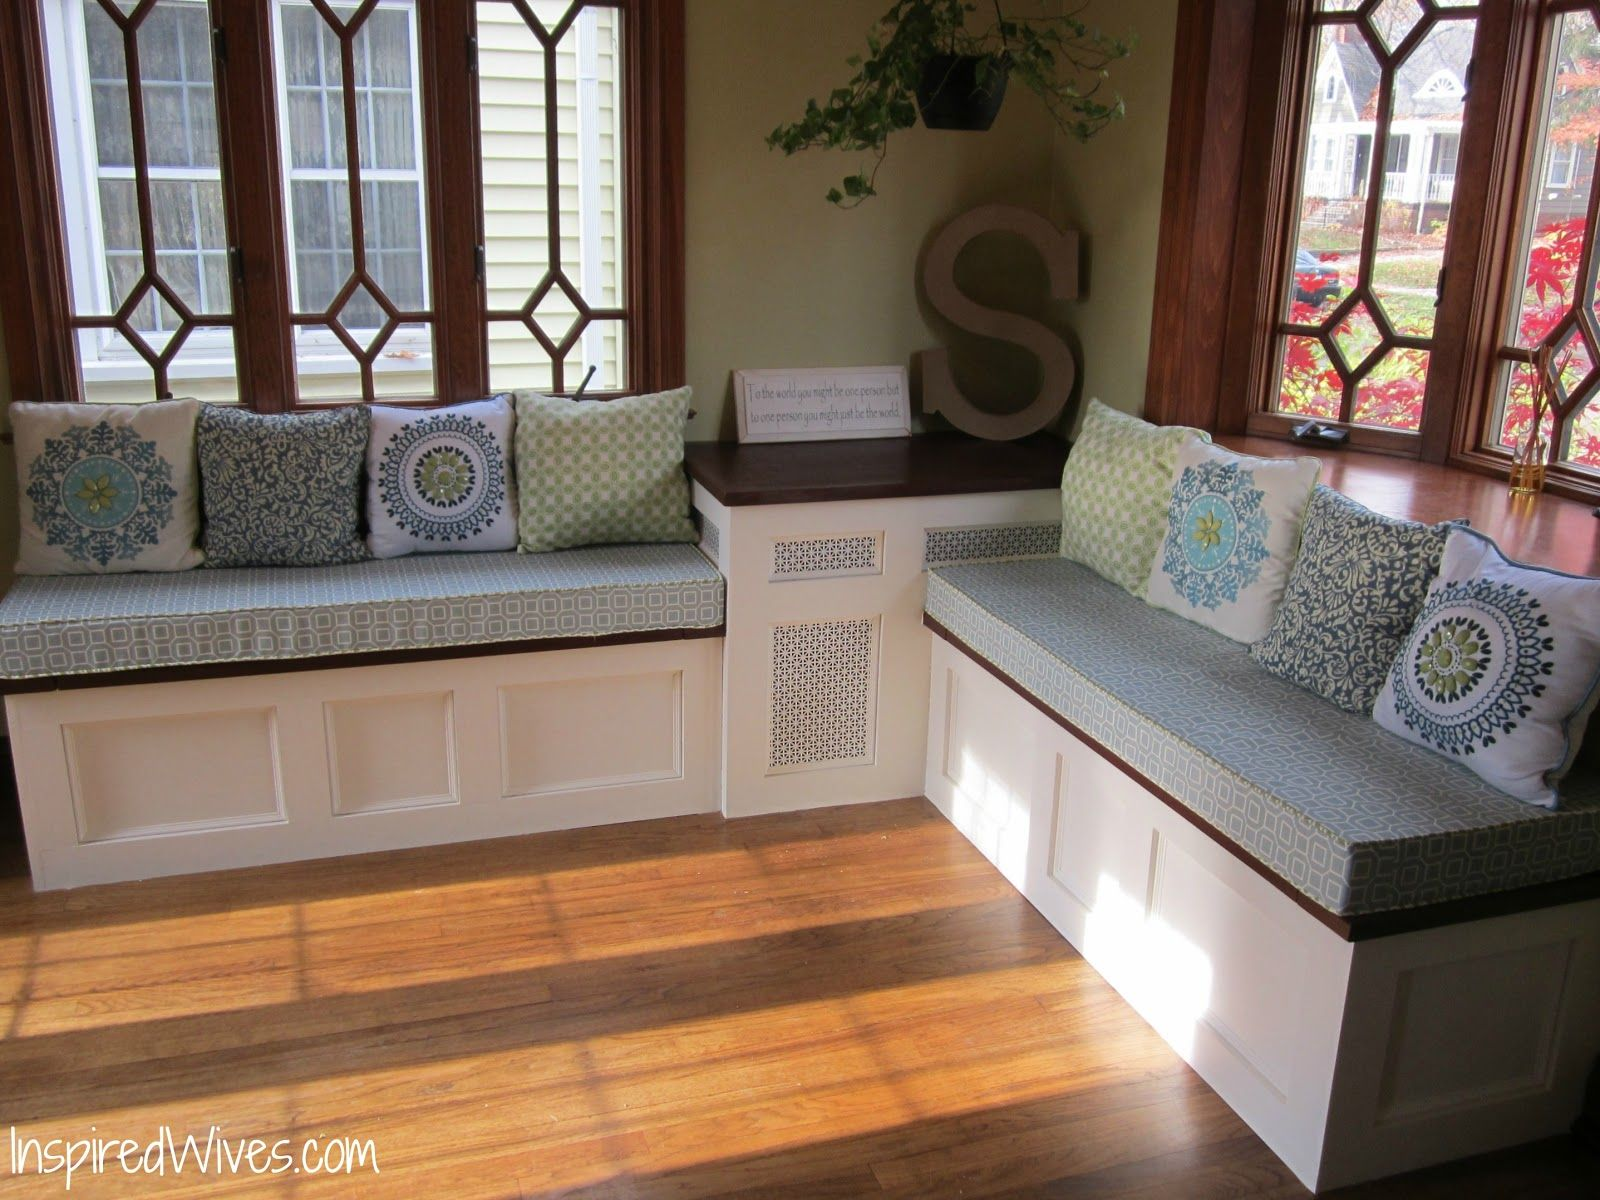 Diy Plans Nook Storage Bench Ehow For Storage Bench